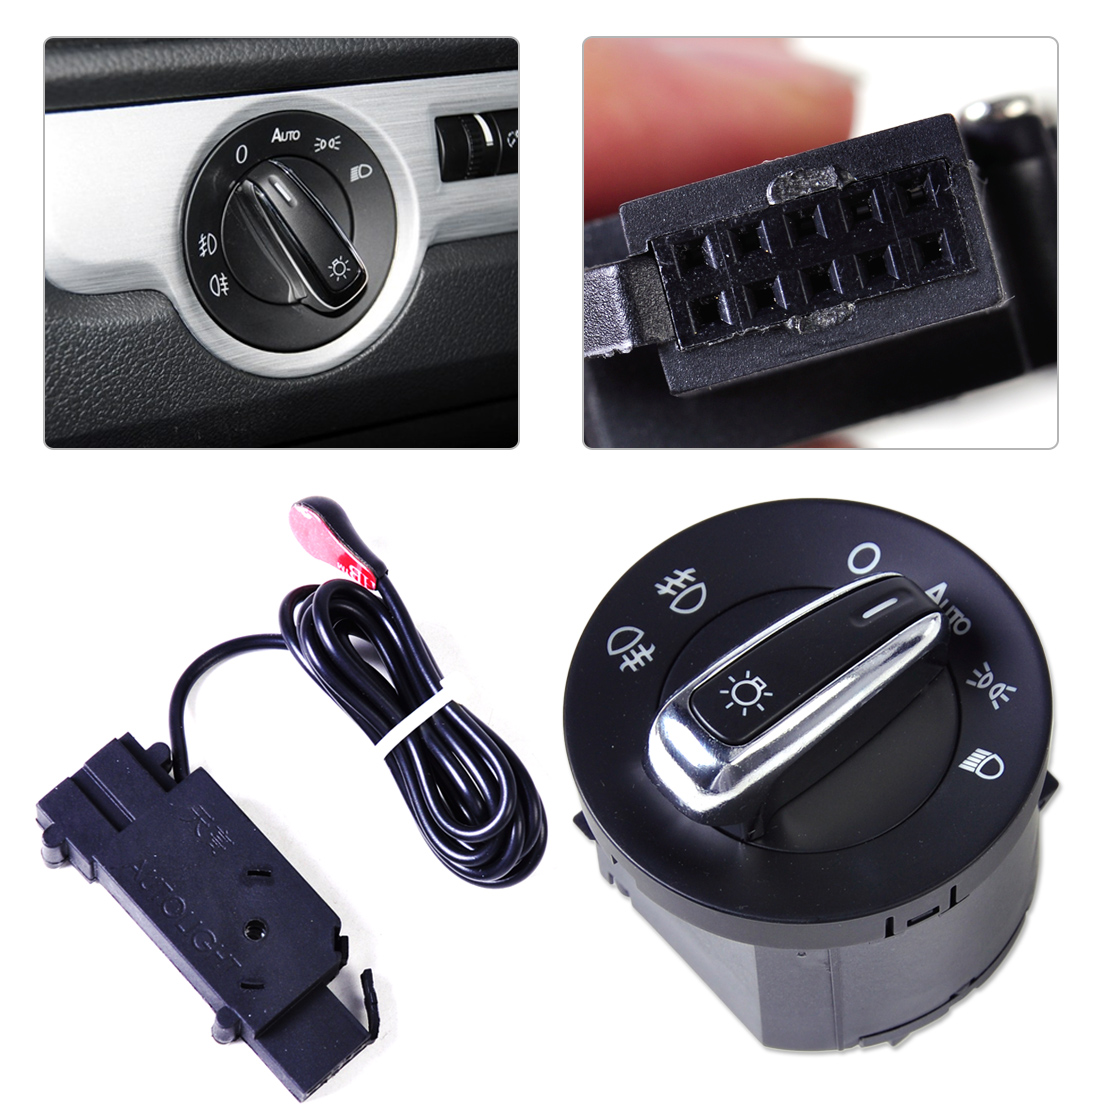 CITALL Auto Headlight Sensor + Chrome Switch 5ND 941 431 B for VW Golf Jetta MK5 MK6 GTI 5 6 Tiguan Passat B6 Rabbit